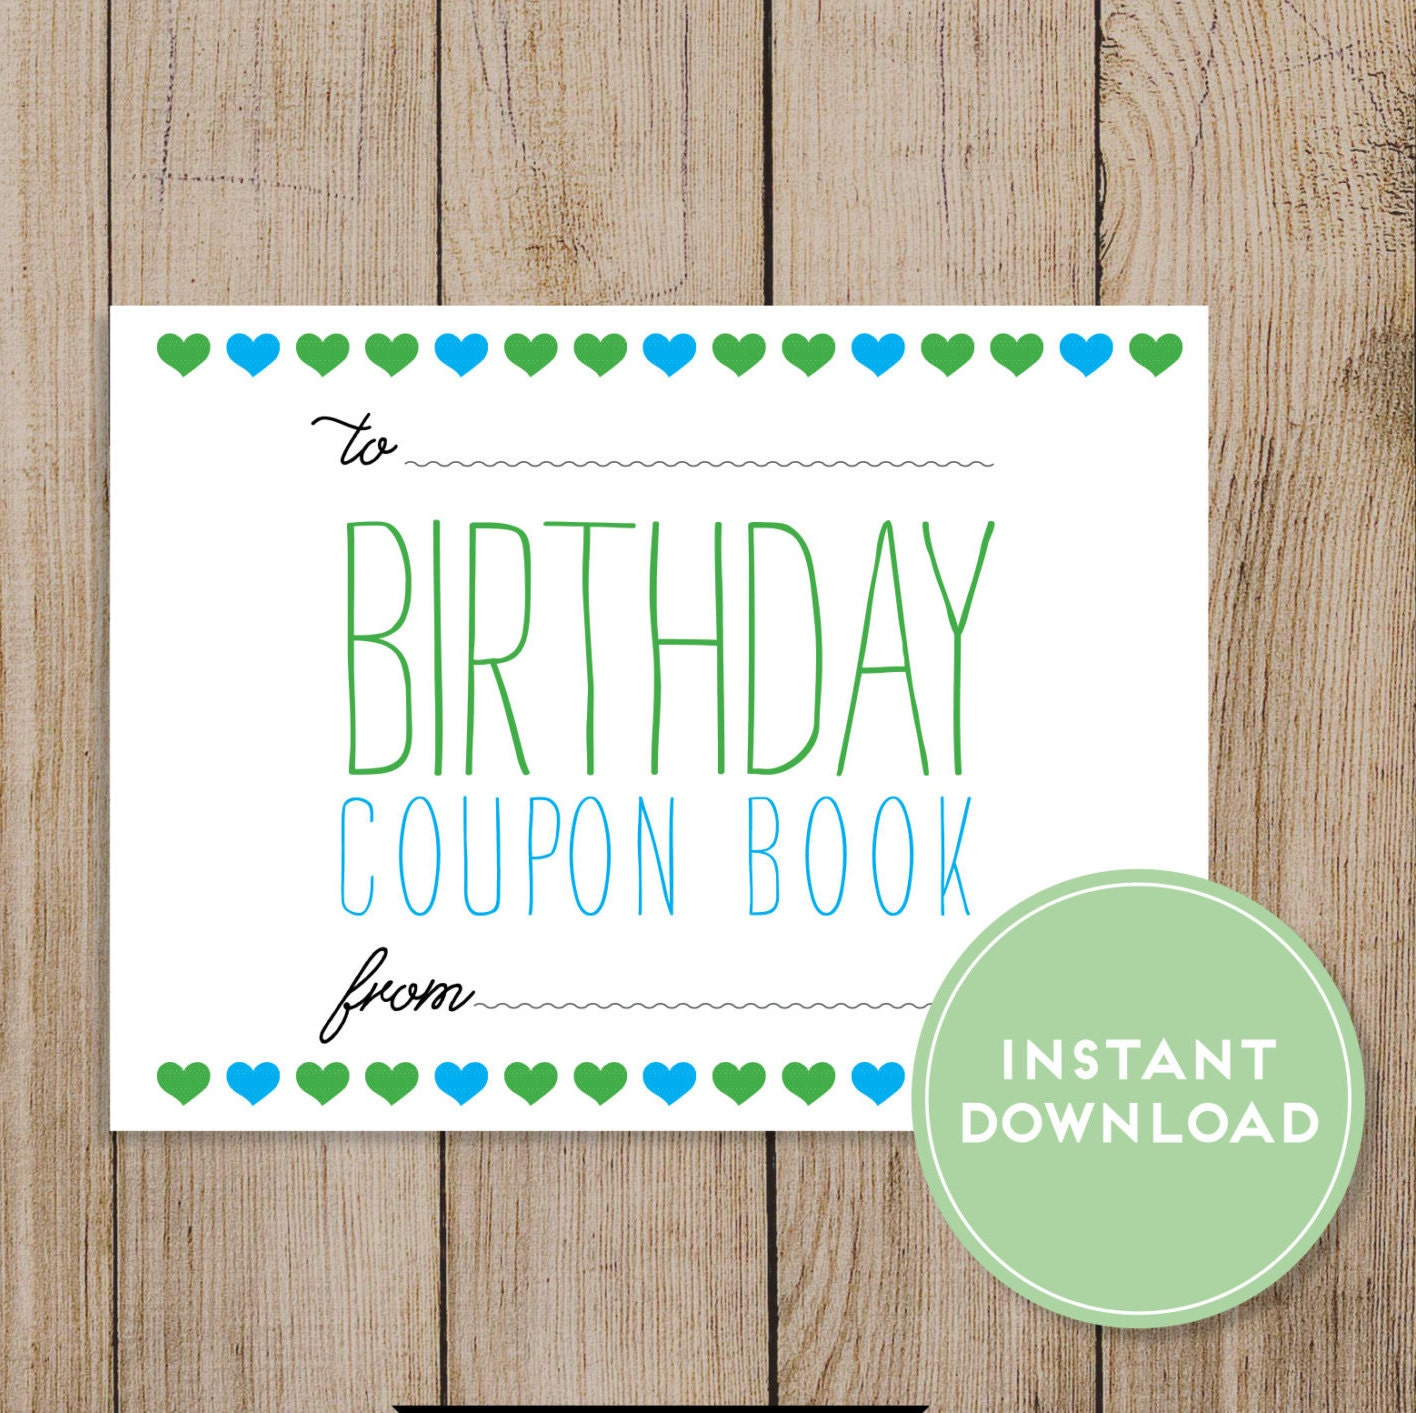 Birthday coupon template idealstalist birthday coupon template free birthday gift certificate yelopaper Image collections